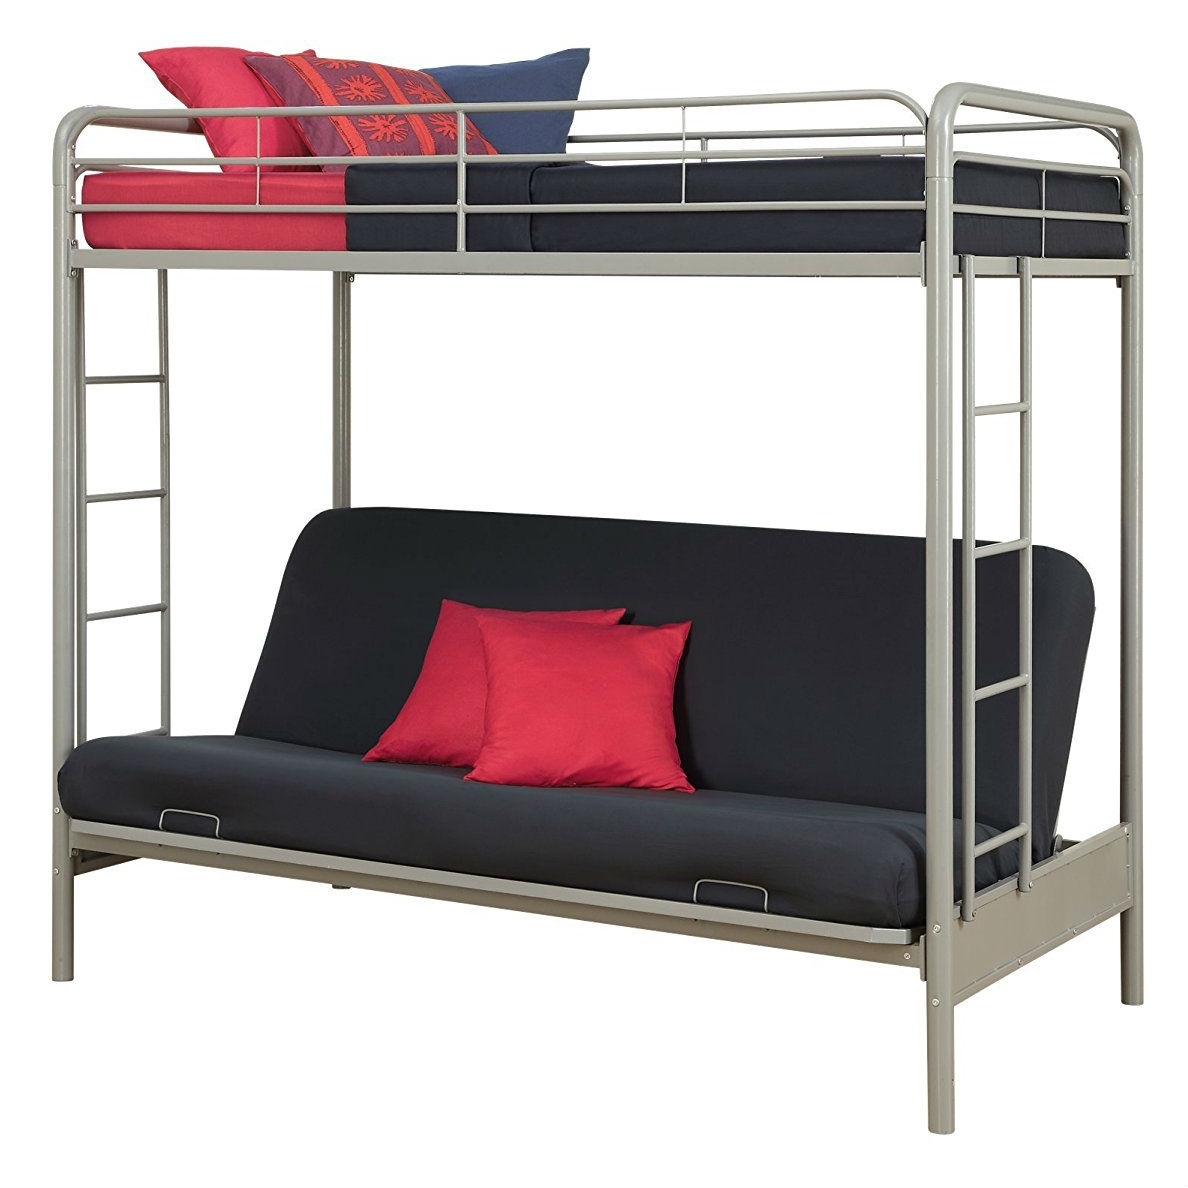 Futon Bunk Bed In Silver Metal Finish